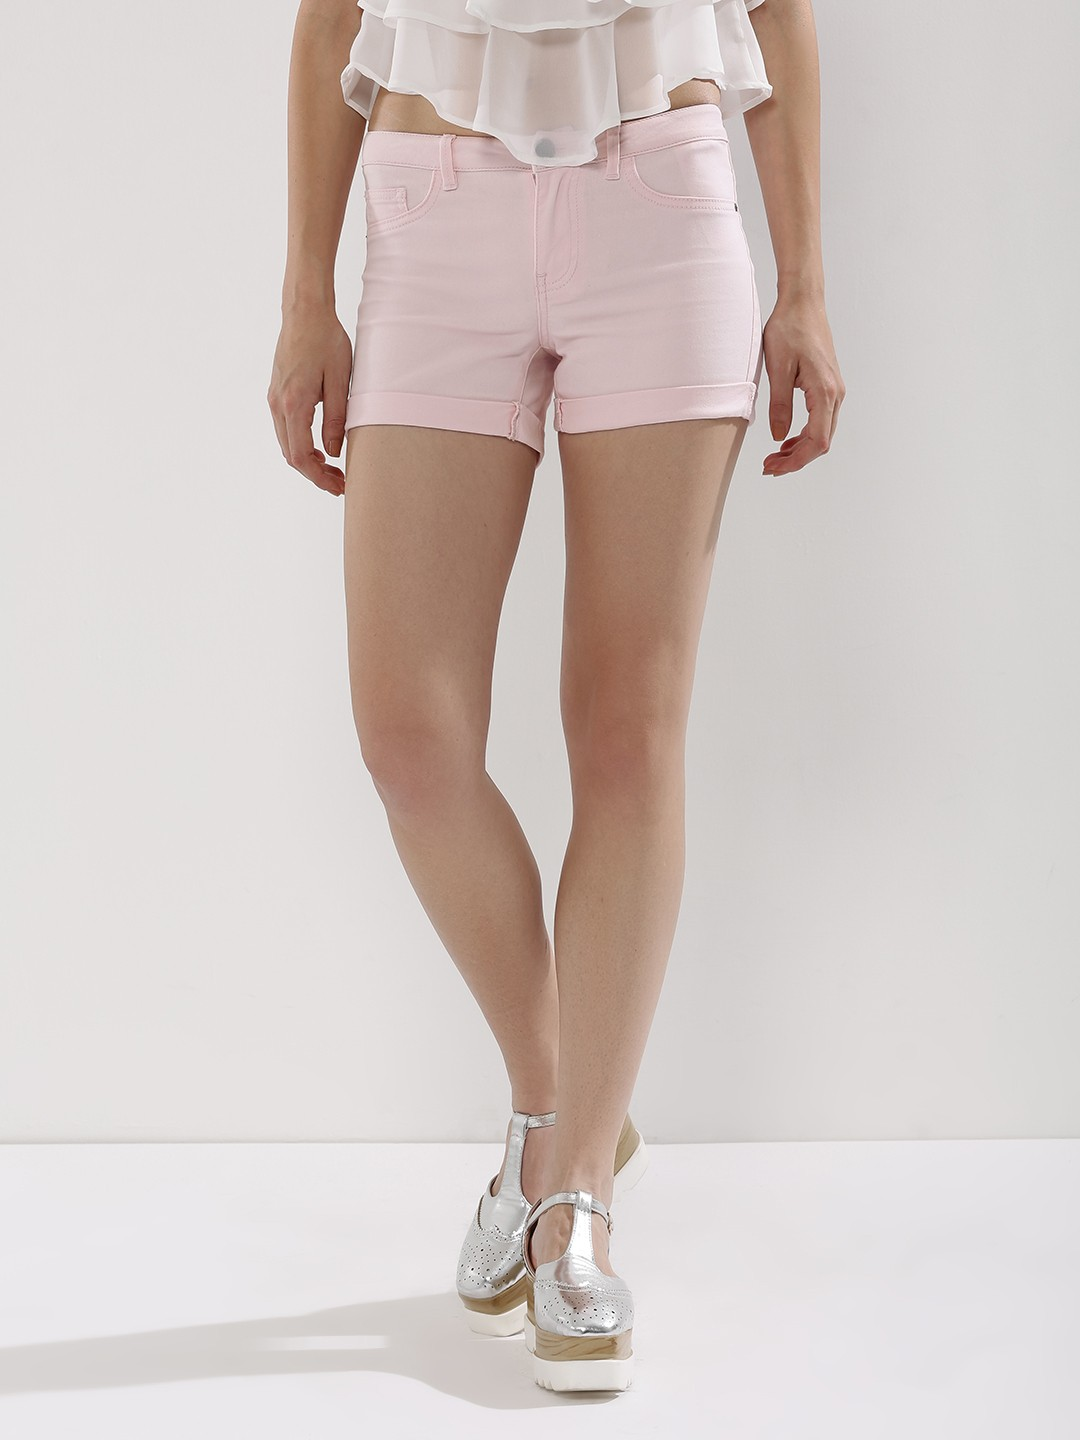 Buy J.D.Y Denim Shorts For Women - Women's Pale Lilac Day Shorts ...